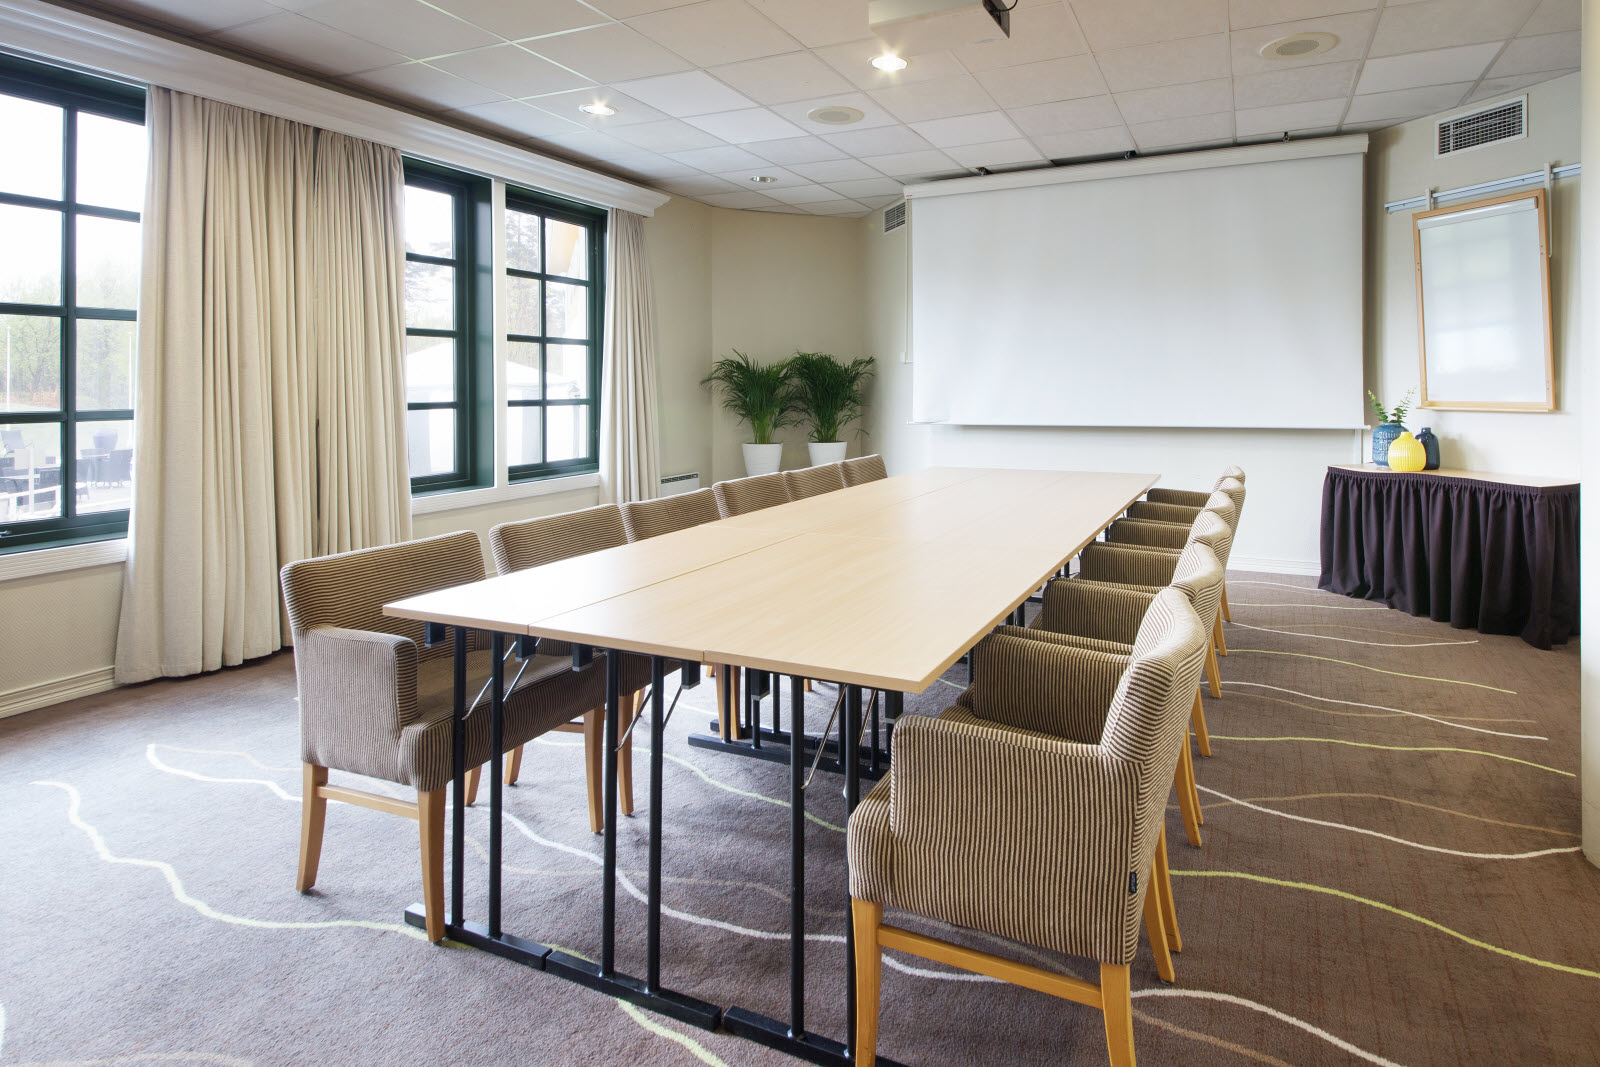 Meeting room Bragdoya